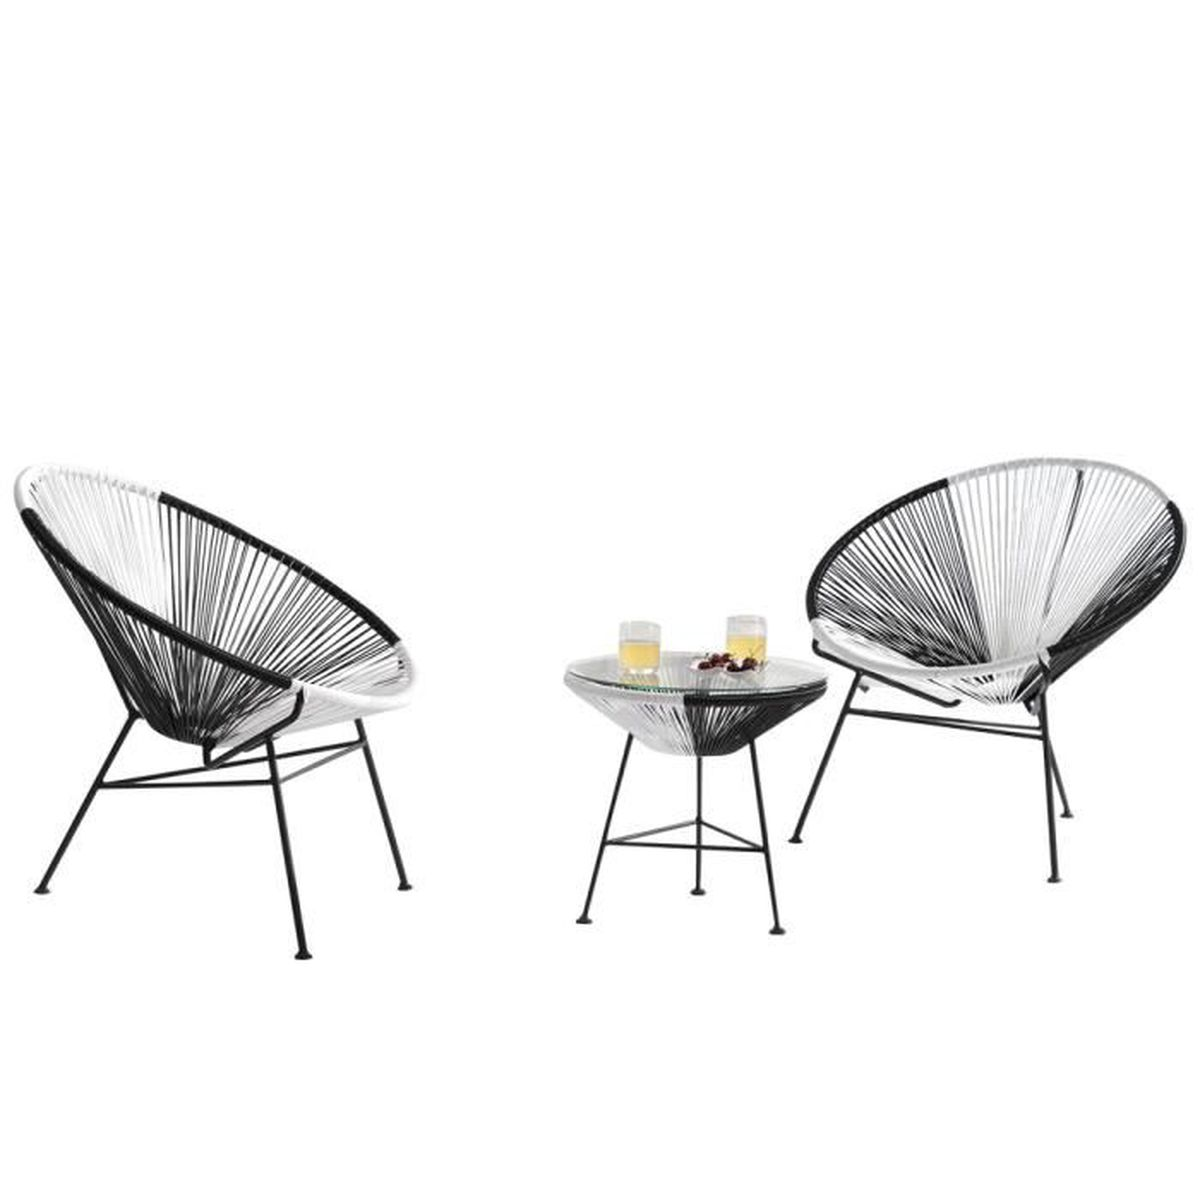 fauteuil rond jardin achat vente pas cher. Black Bedroom Furniture Sets. Home Design Ideas